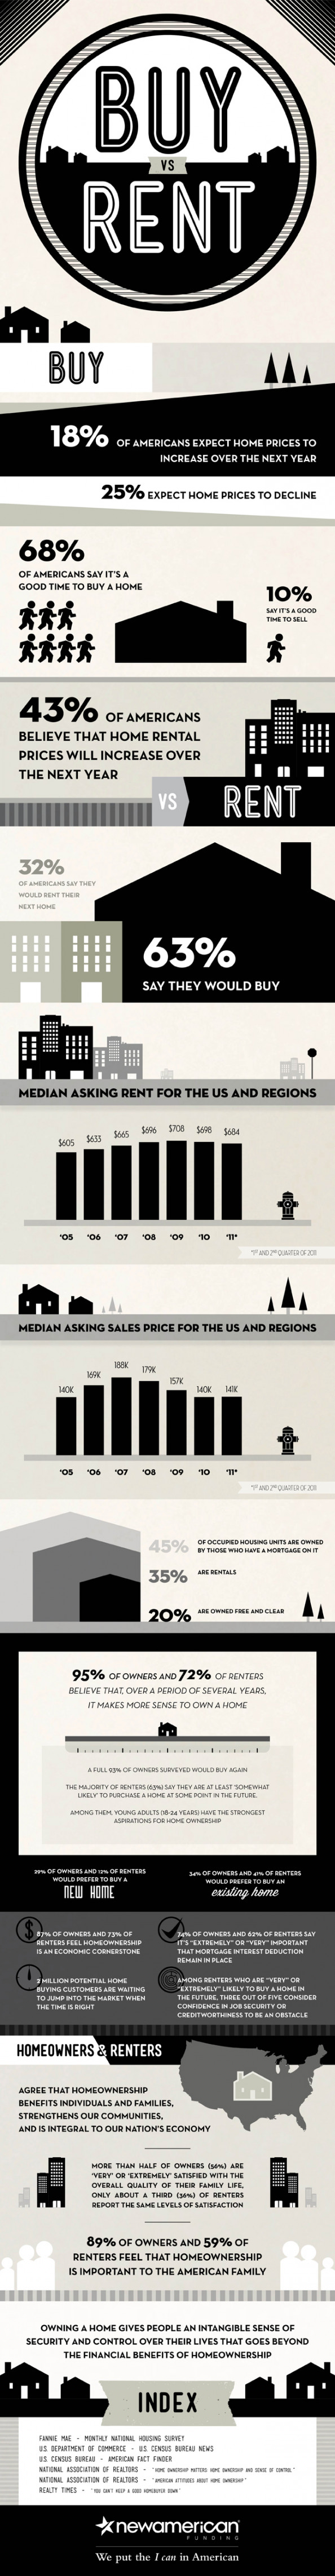 Buy vs. Rent Infographic